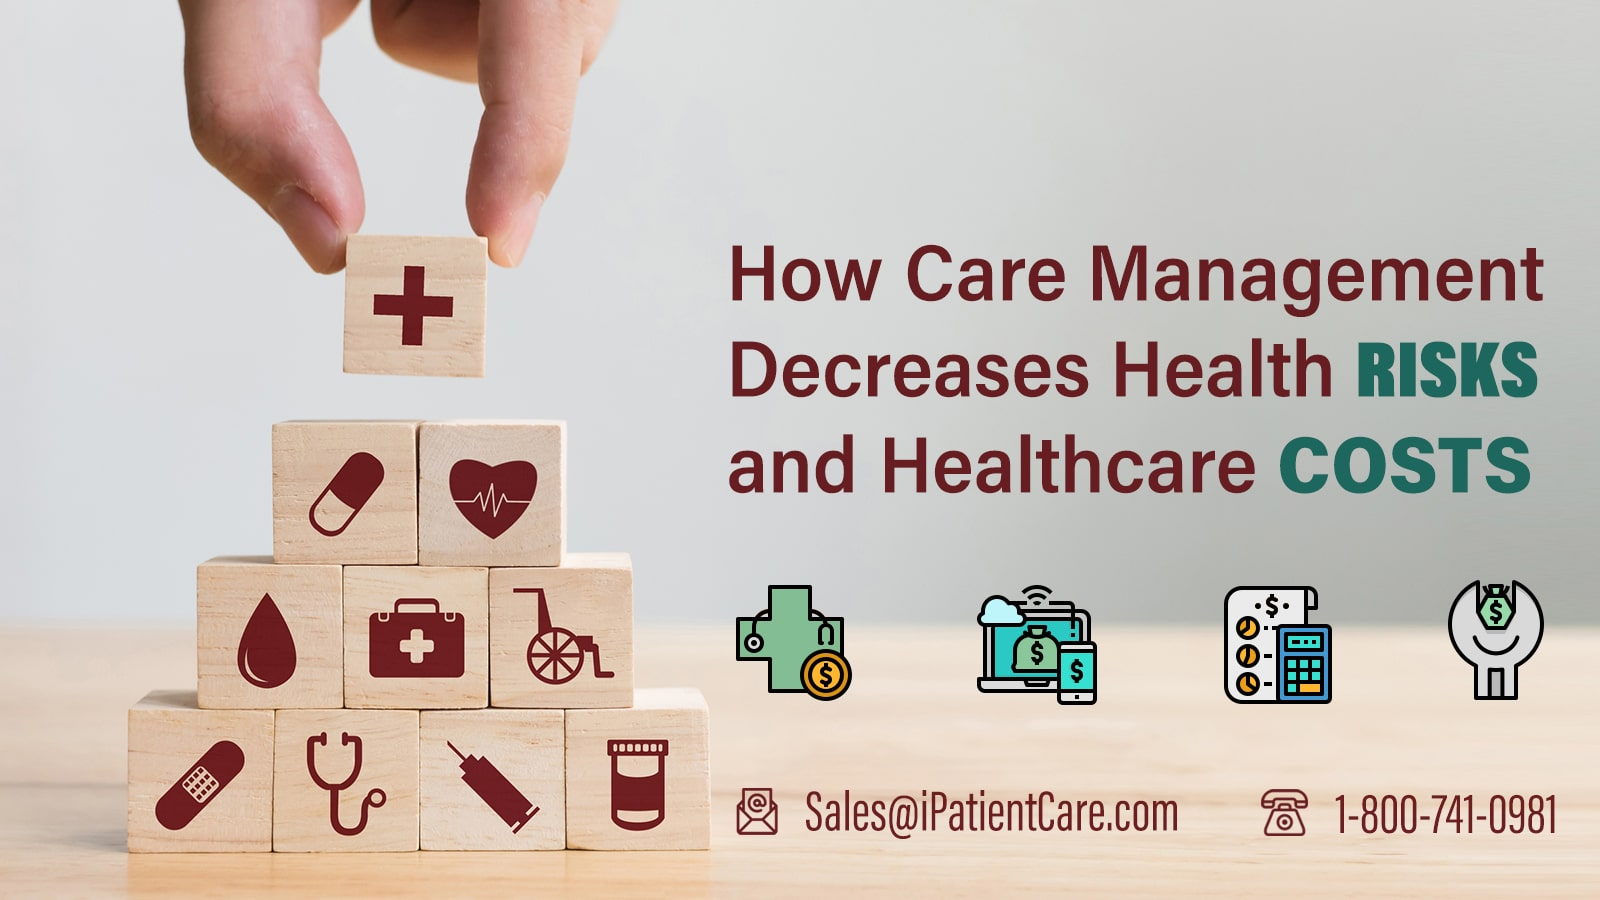 iPatientCare Blog - How Care Management Decreases Health Risks and Healthcare Costs